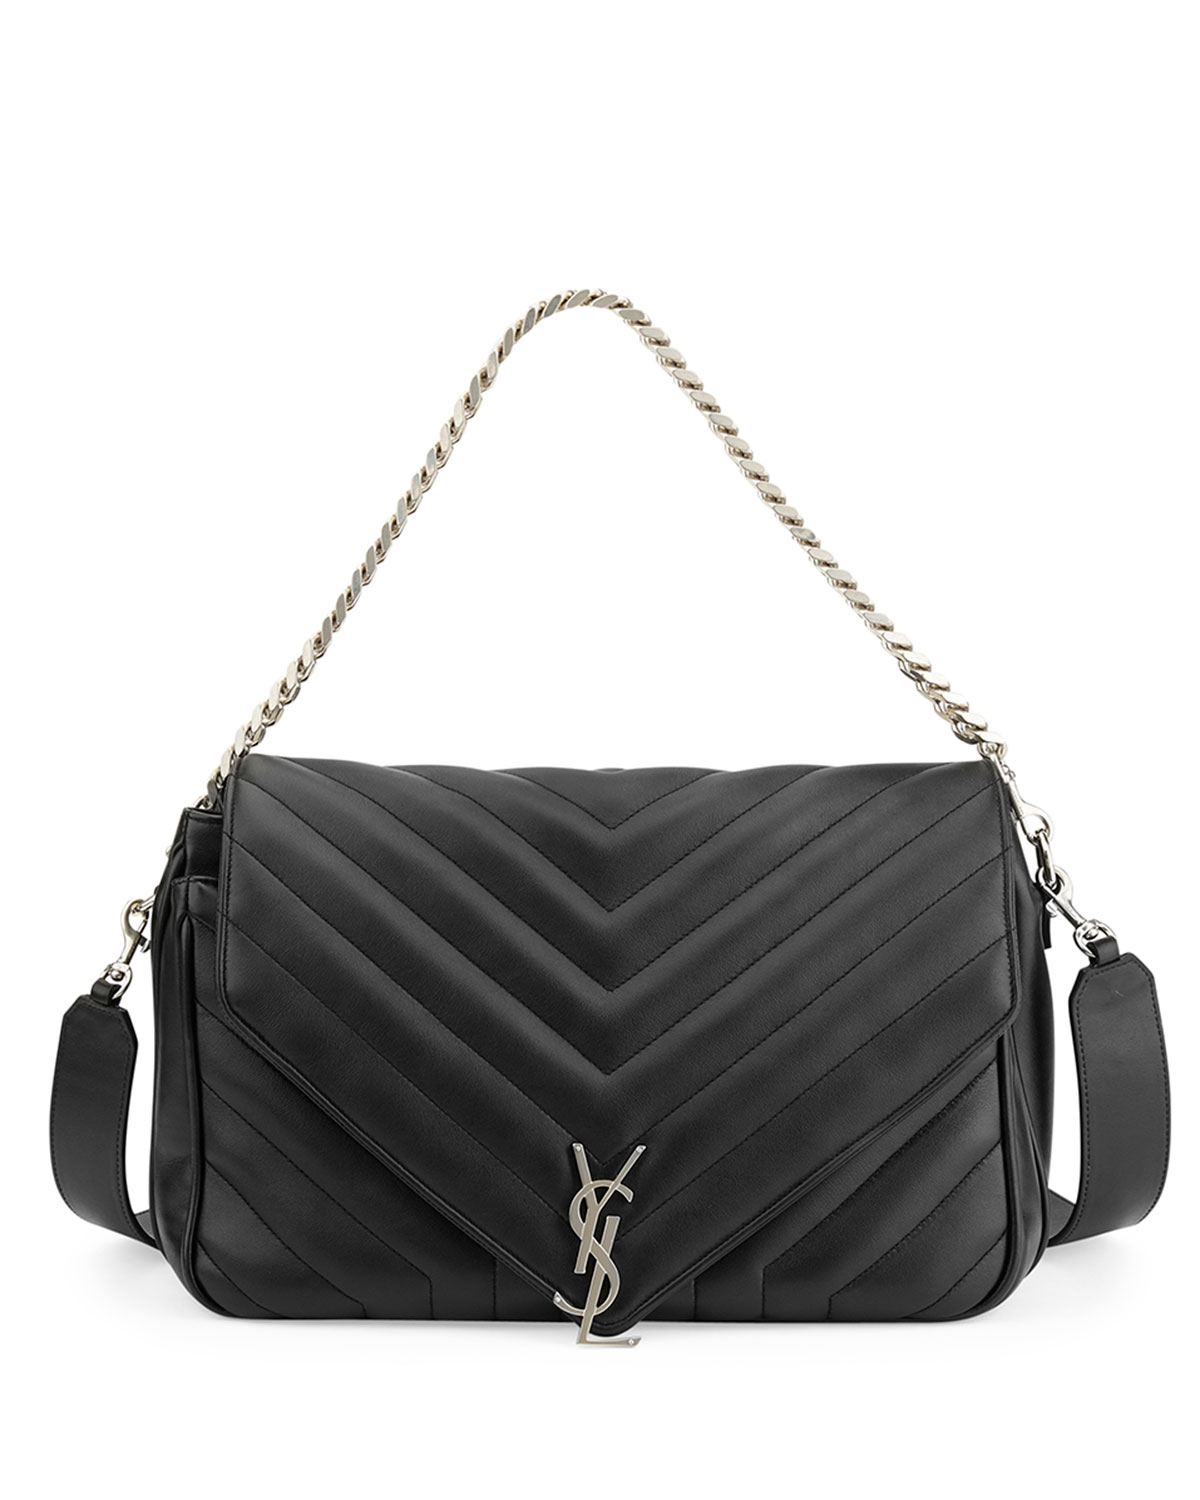 9f225af2fc30 Saint Laurent Monogram Large Slouchy Matelassé Leather Shoulder Bag ...